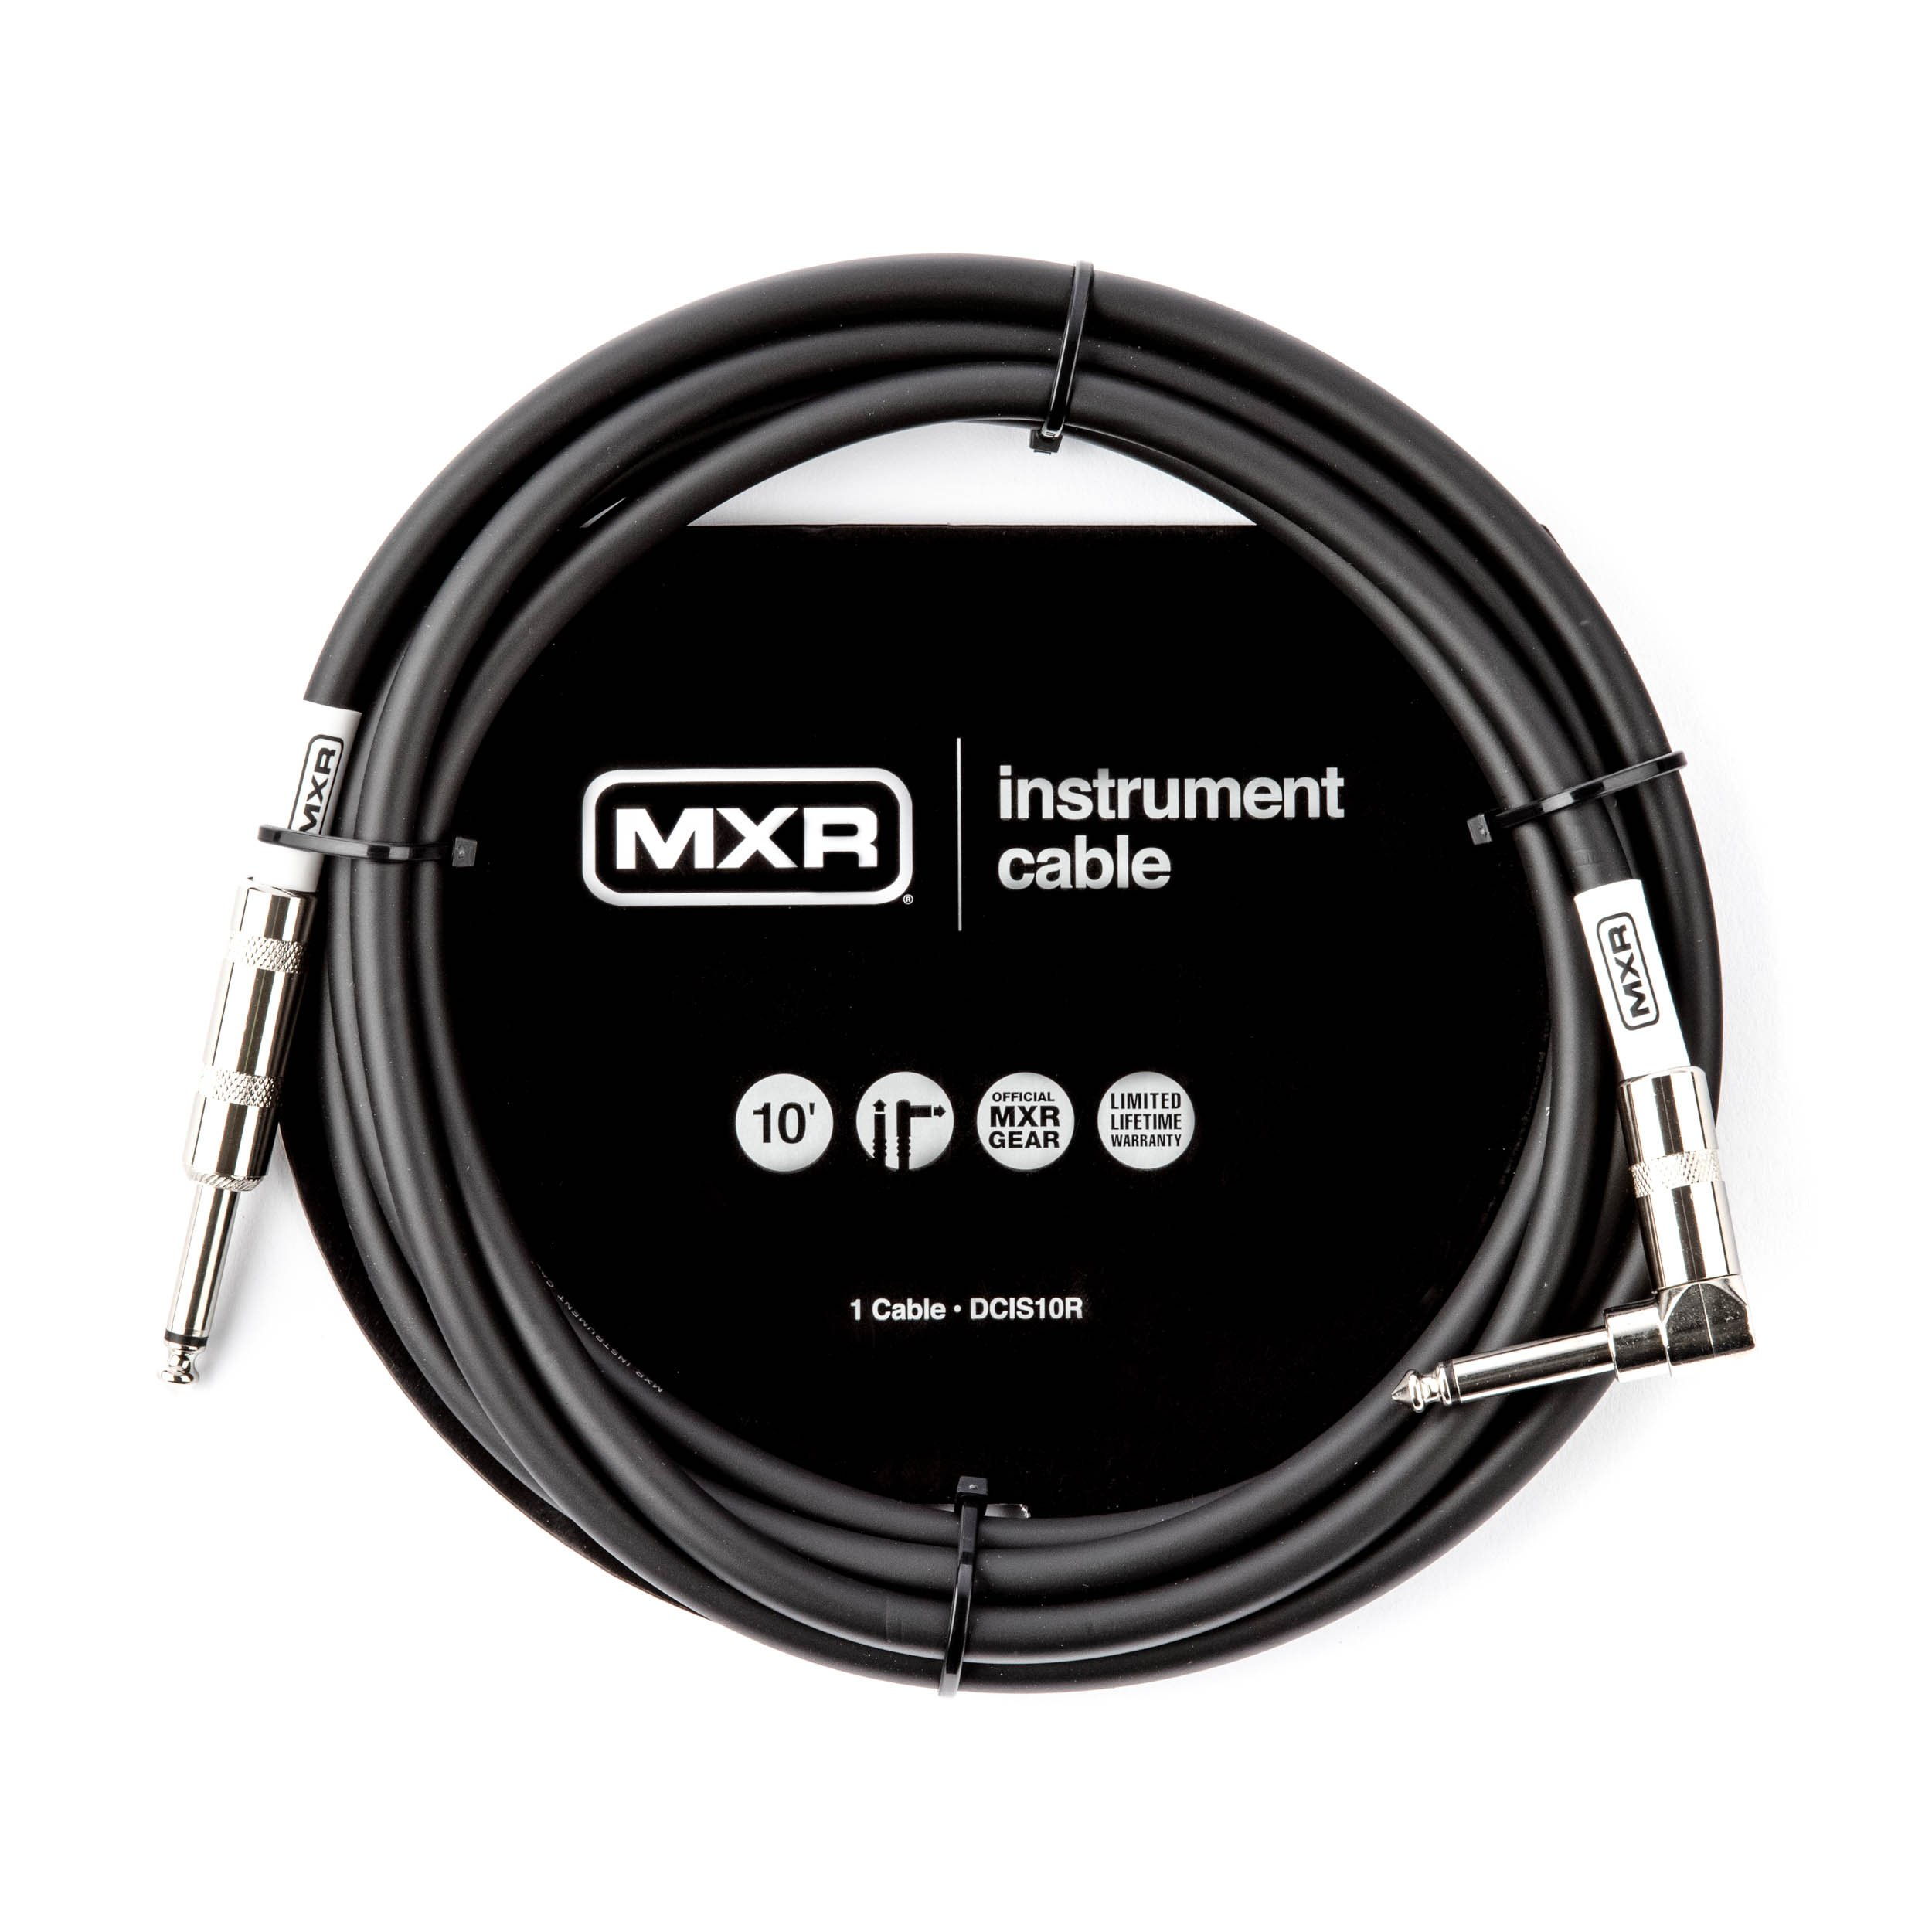 MXR Stage or Studio Cable, Black, 10 Feet (DCIS10R)